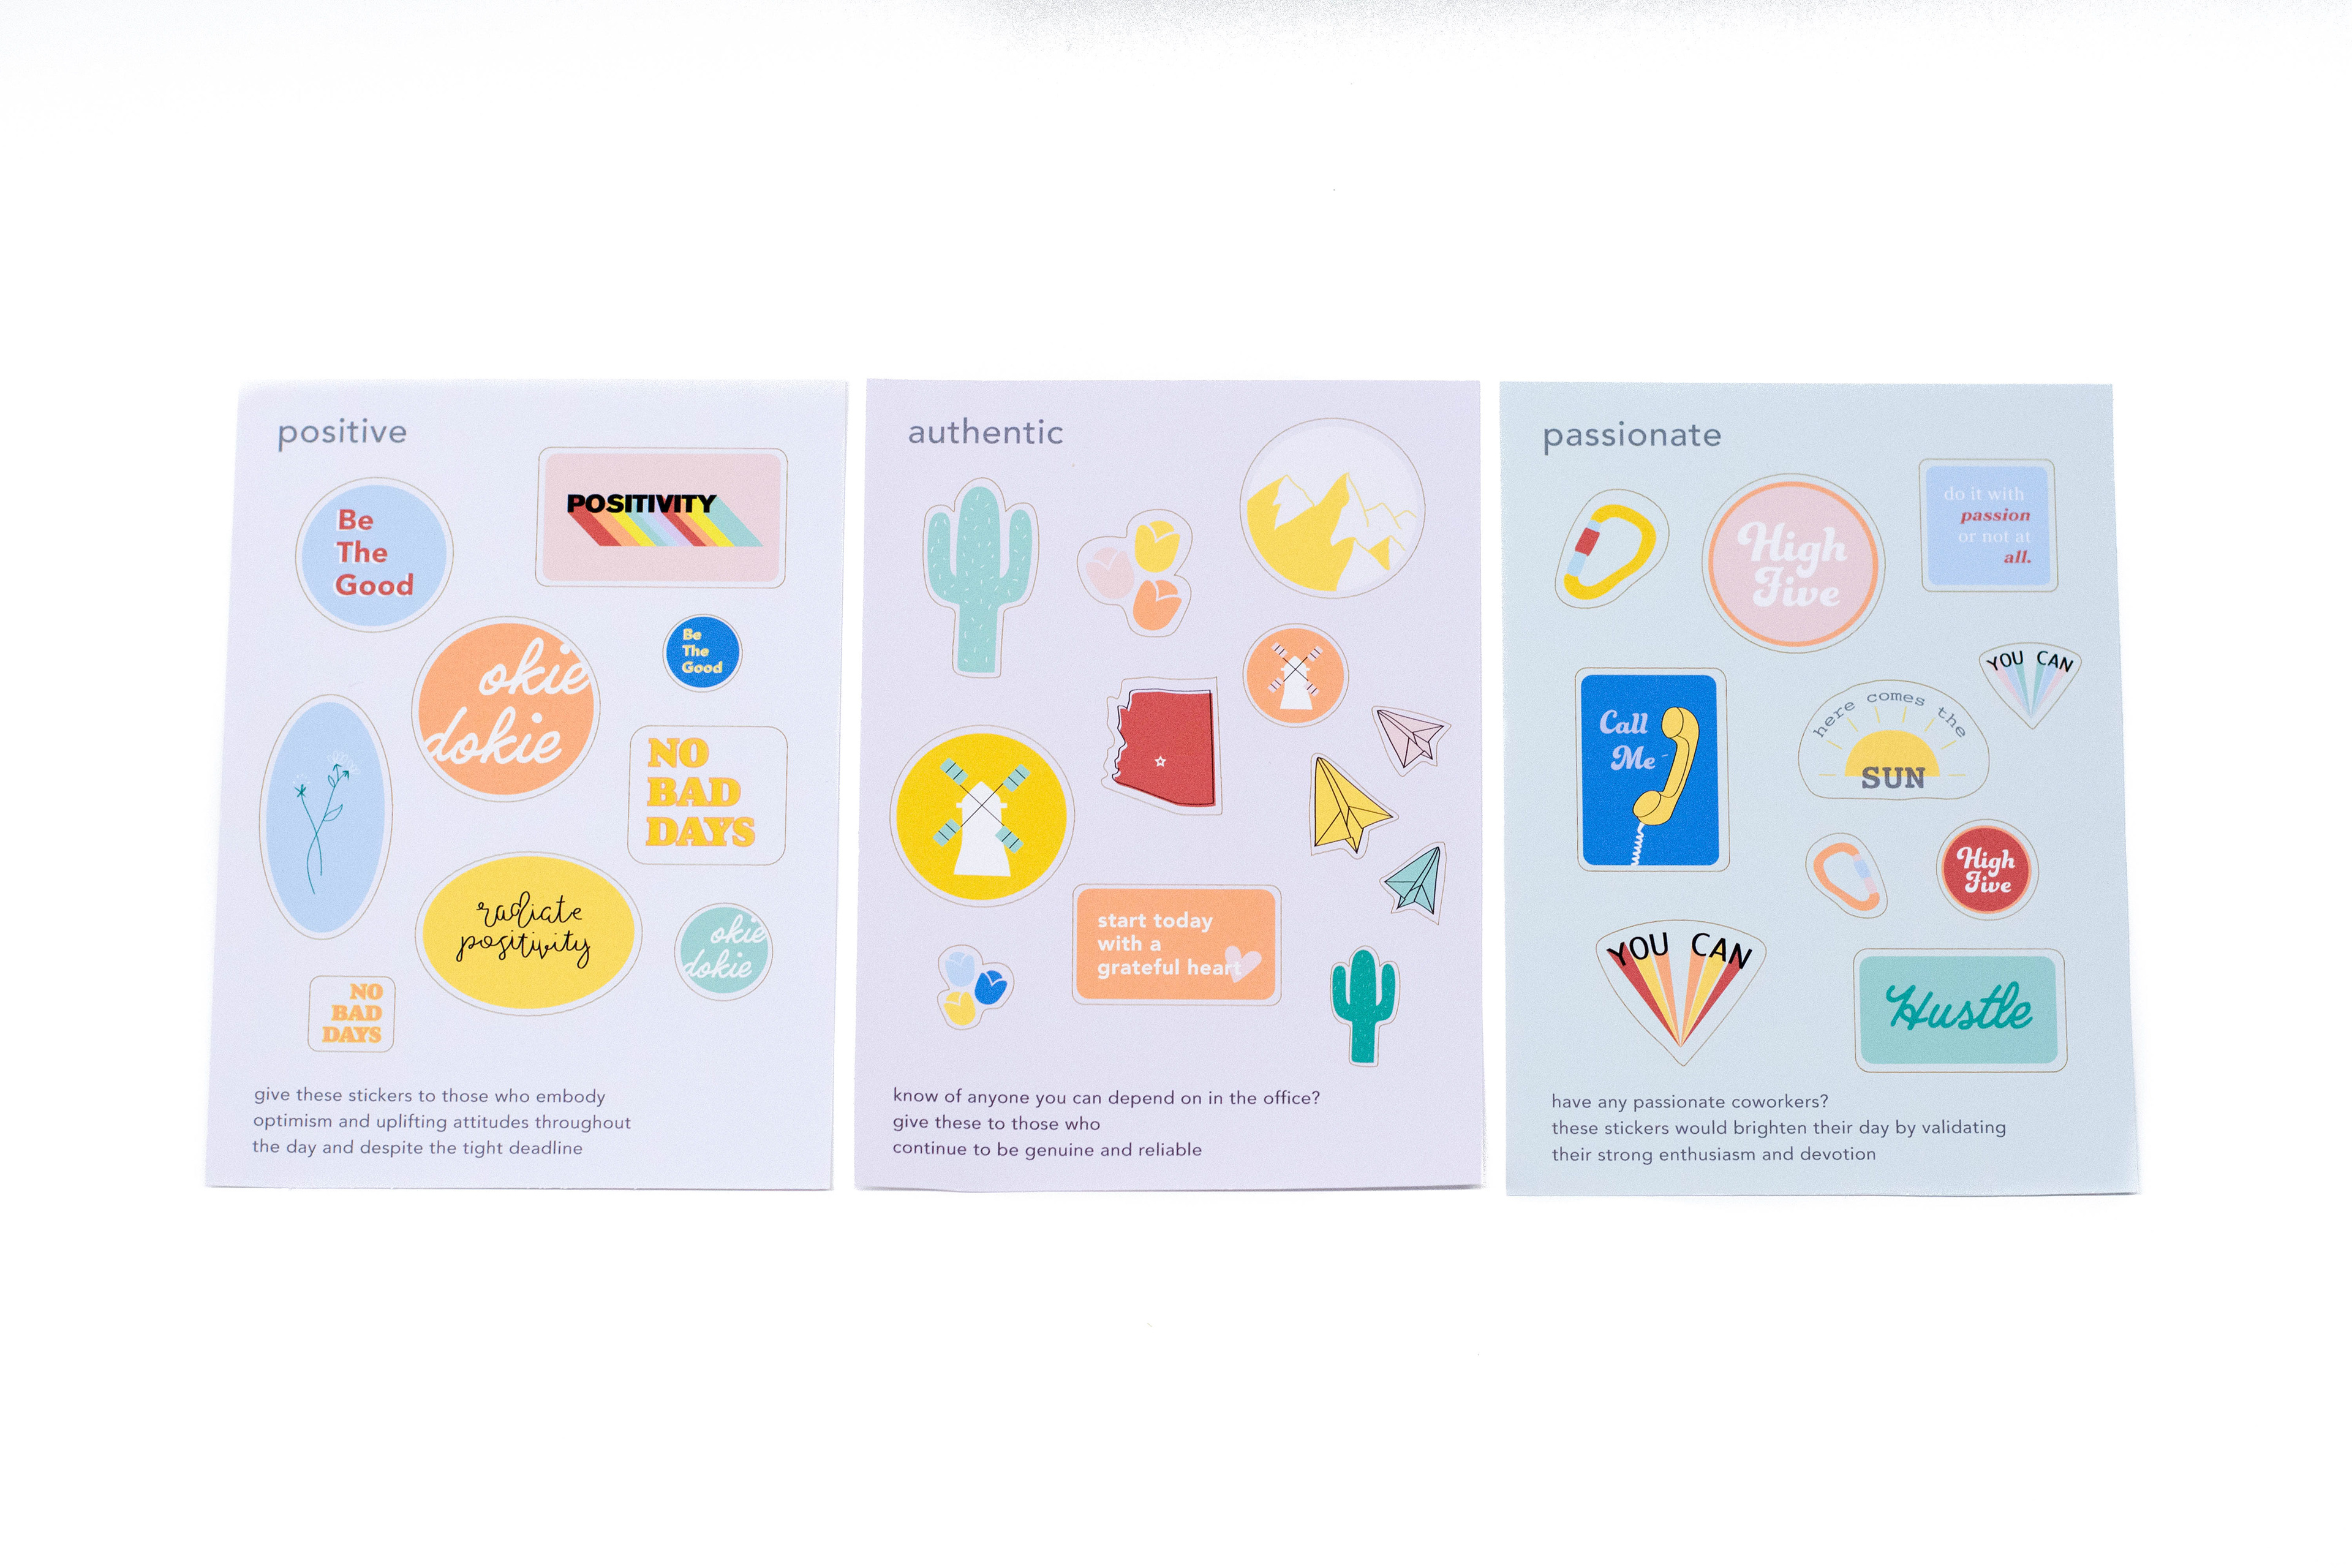 This project was made with adobe illustrator and laser cutters to achieve the custom sticker sheet template